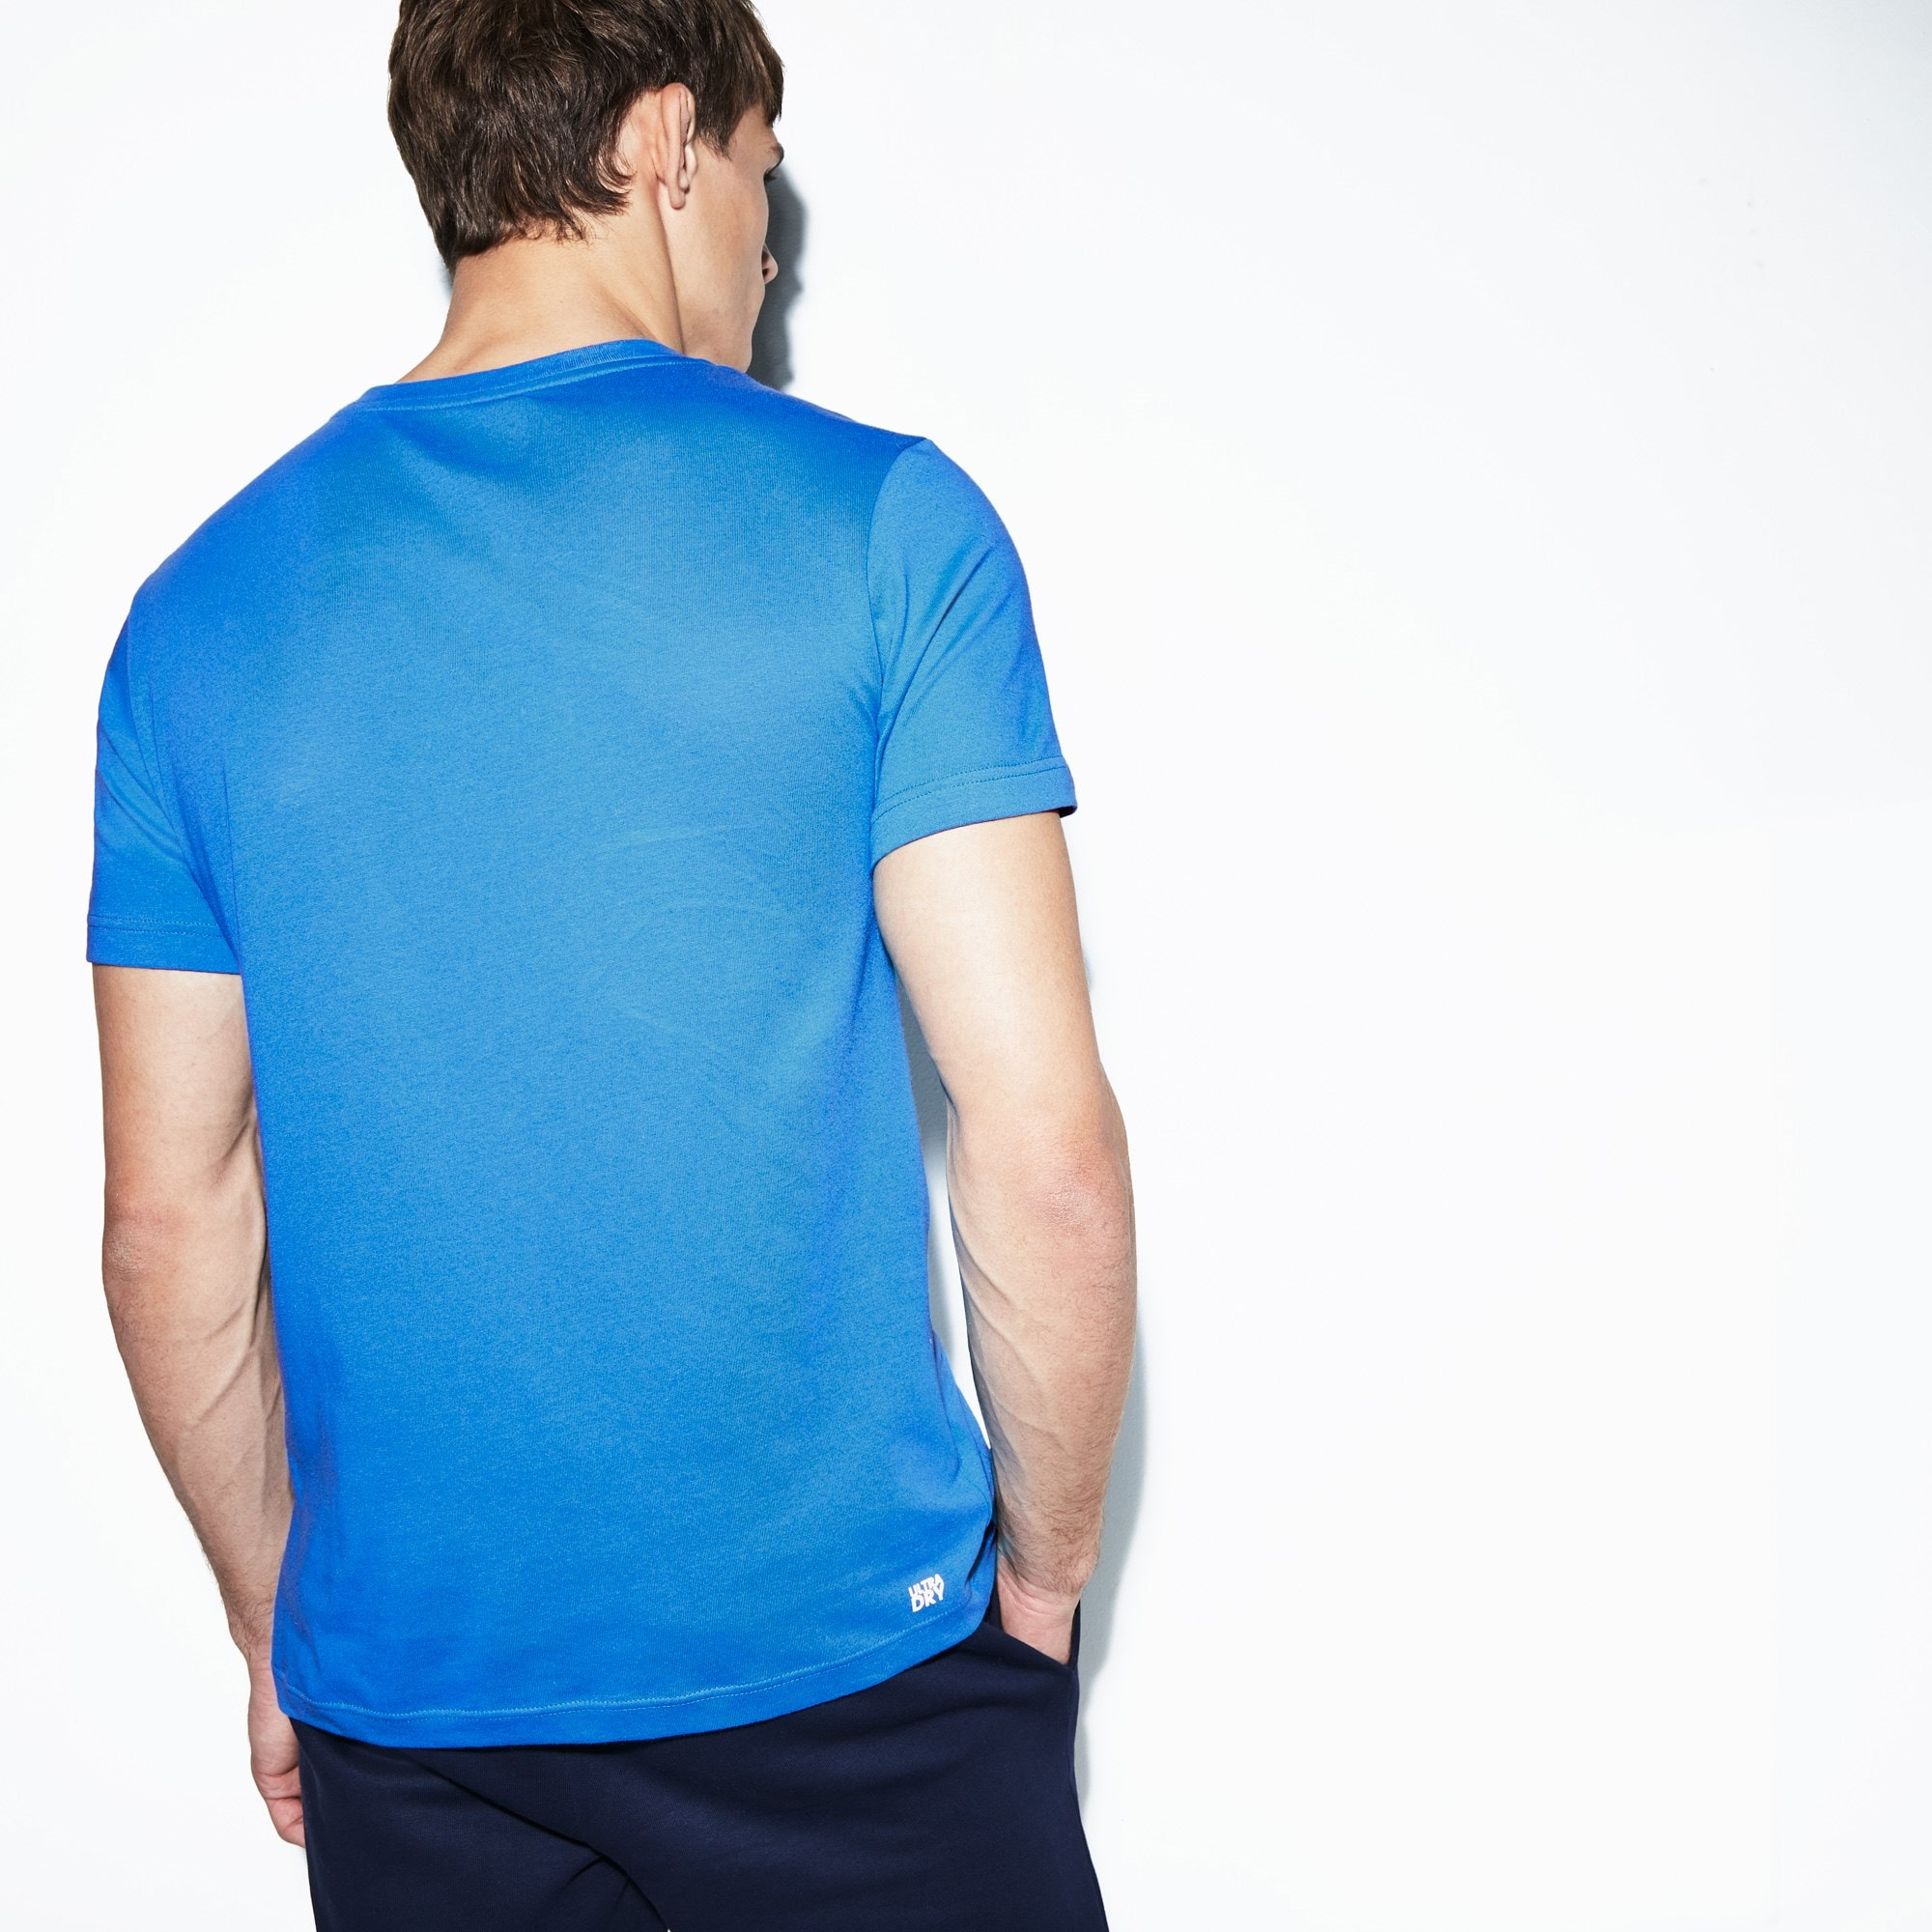 Men's Lacoste SPORT Crew Neck Croc Print Tech Jersey Tennis...